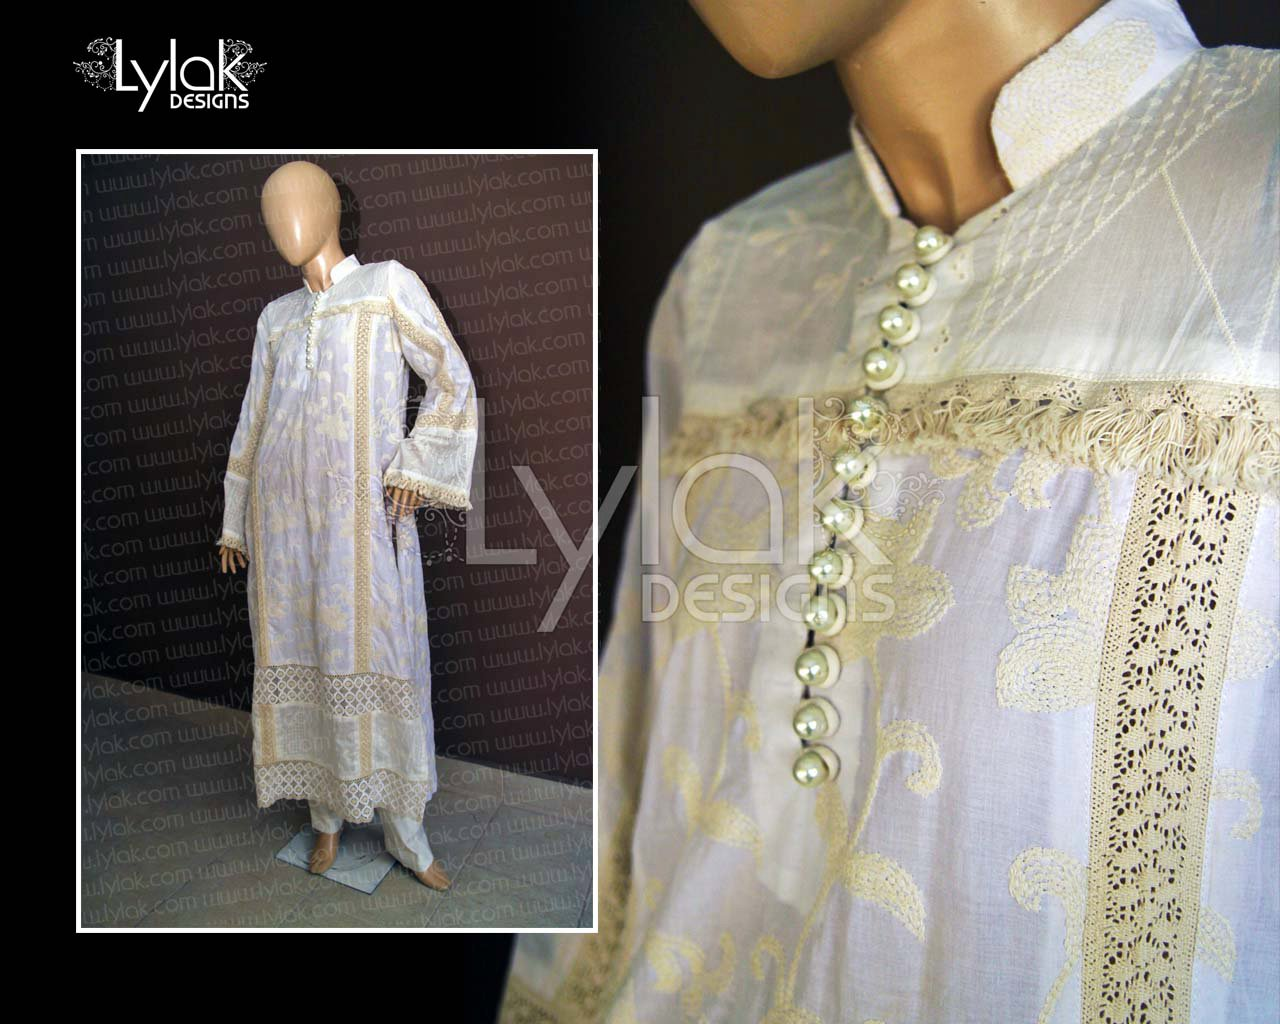 Offwhite Casual Shirt by Lylak Designs 007